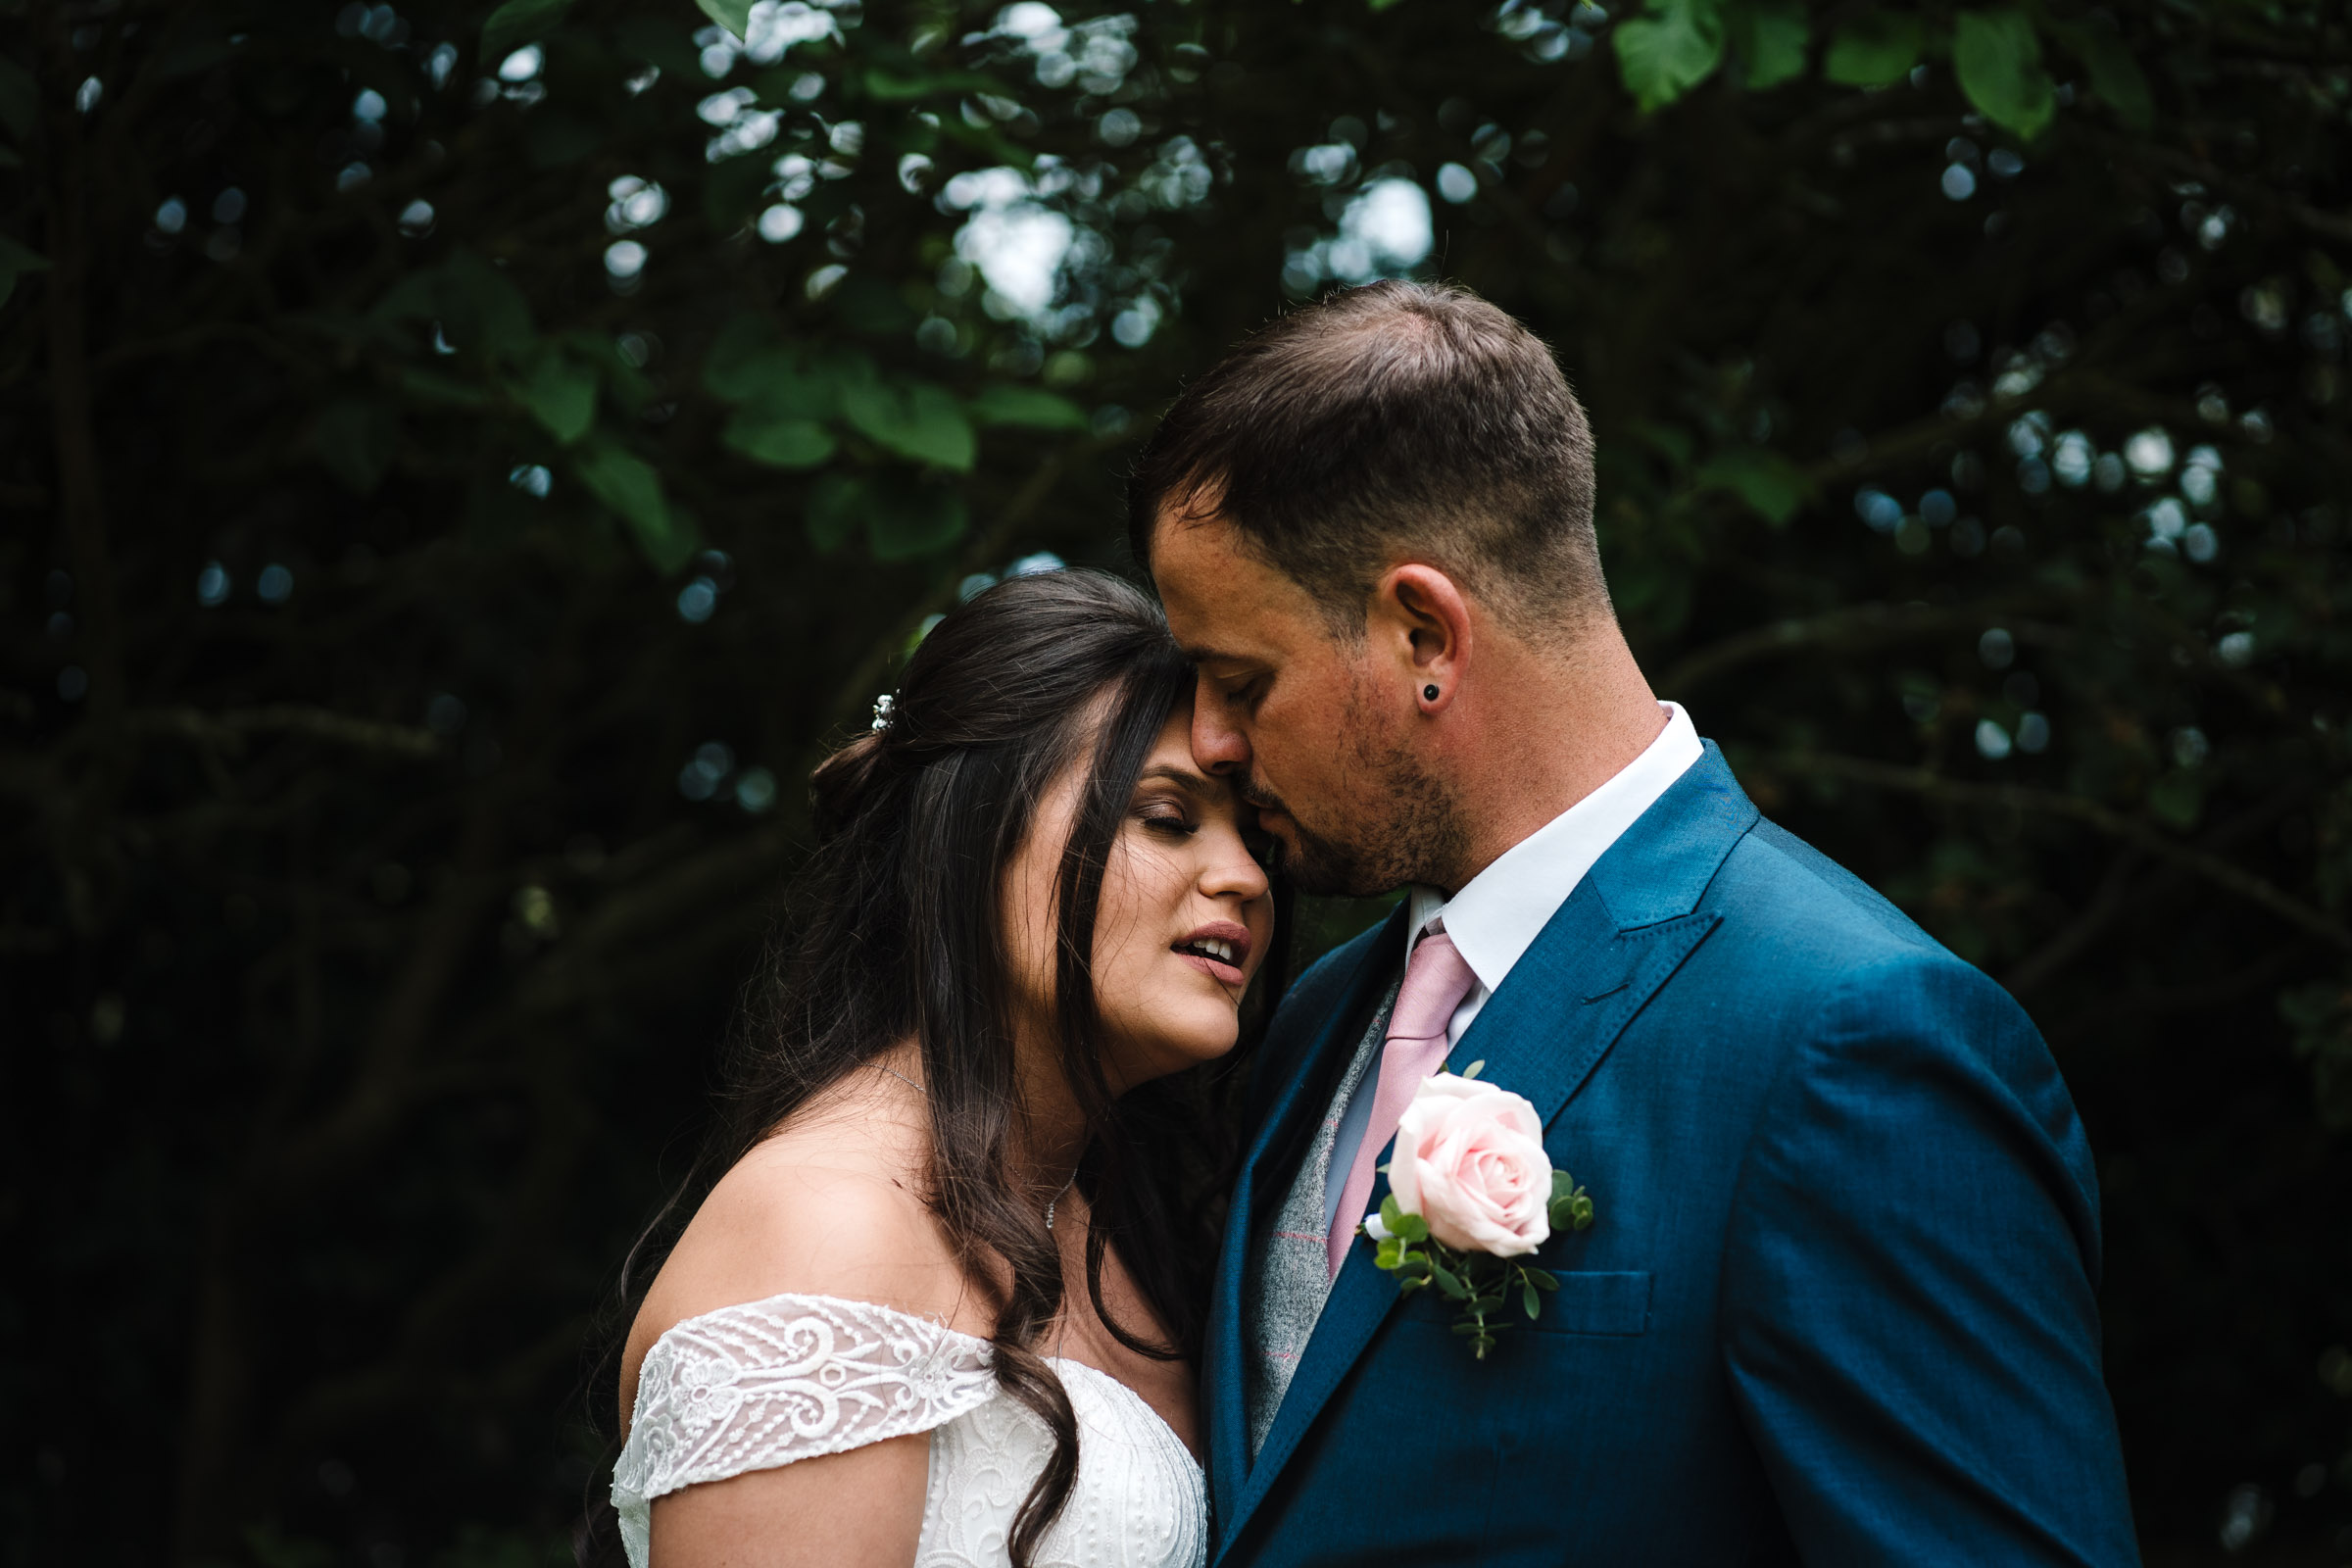 Bride and groom standing close, groom kissing brides forehead